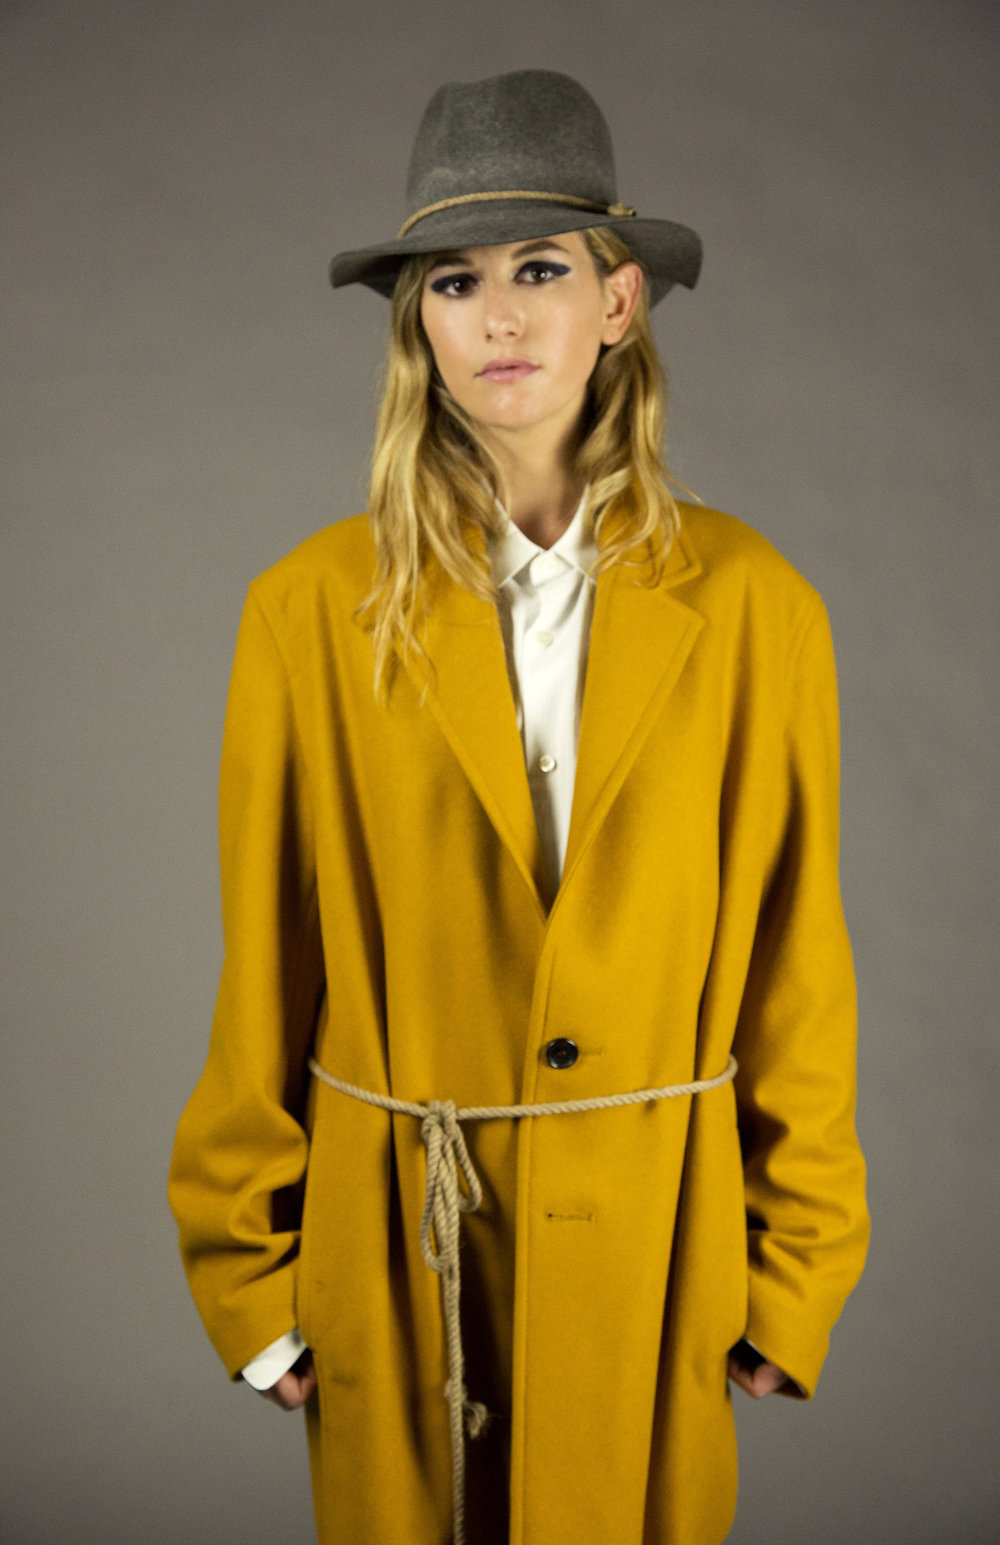 COAT 1 gold  2-button walking coat.oversized fit.drop shoulder. unlined with bias piped seams.natural melange rope detail at neck.natural horn buttons. below knee length.  sizes 0-1-2-3  100% italian felted wool